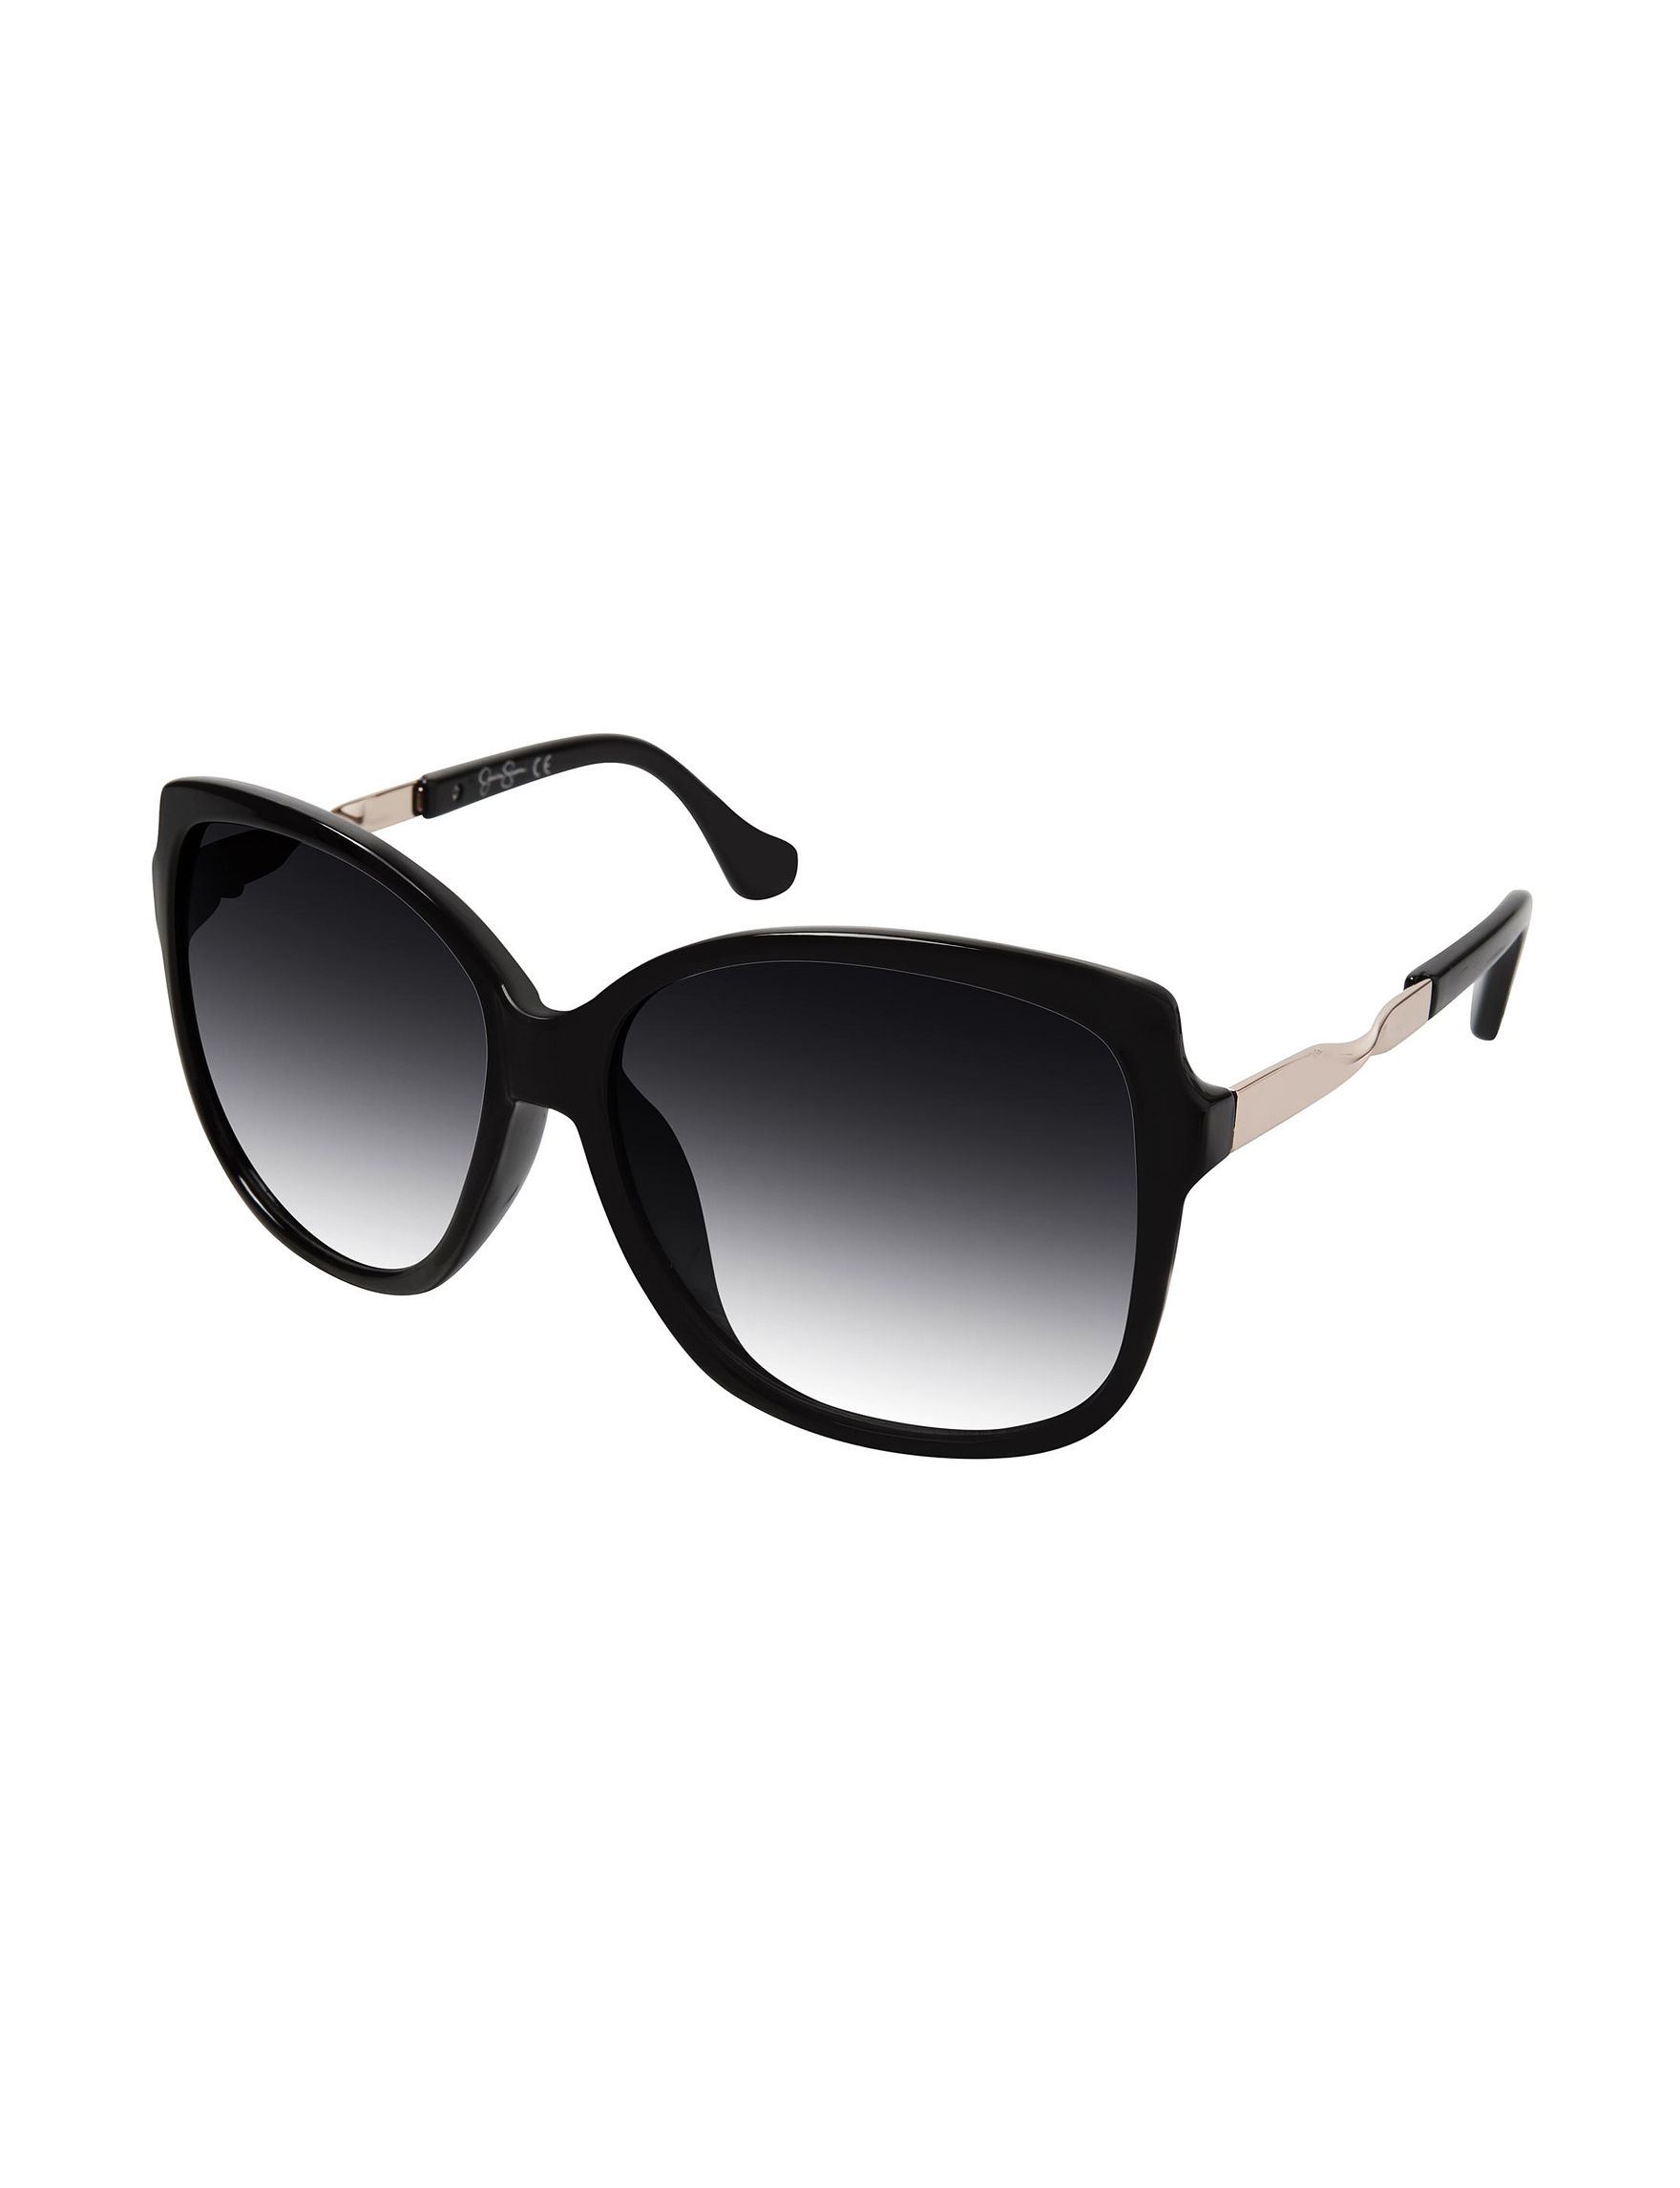 194f382096692 Jessica Simpson Women s Oversized Square Sunglasses